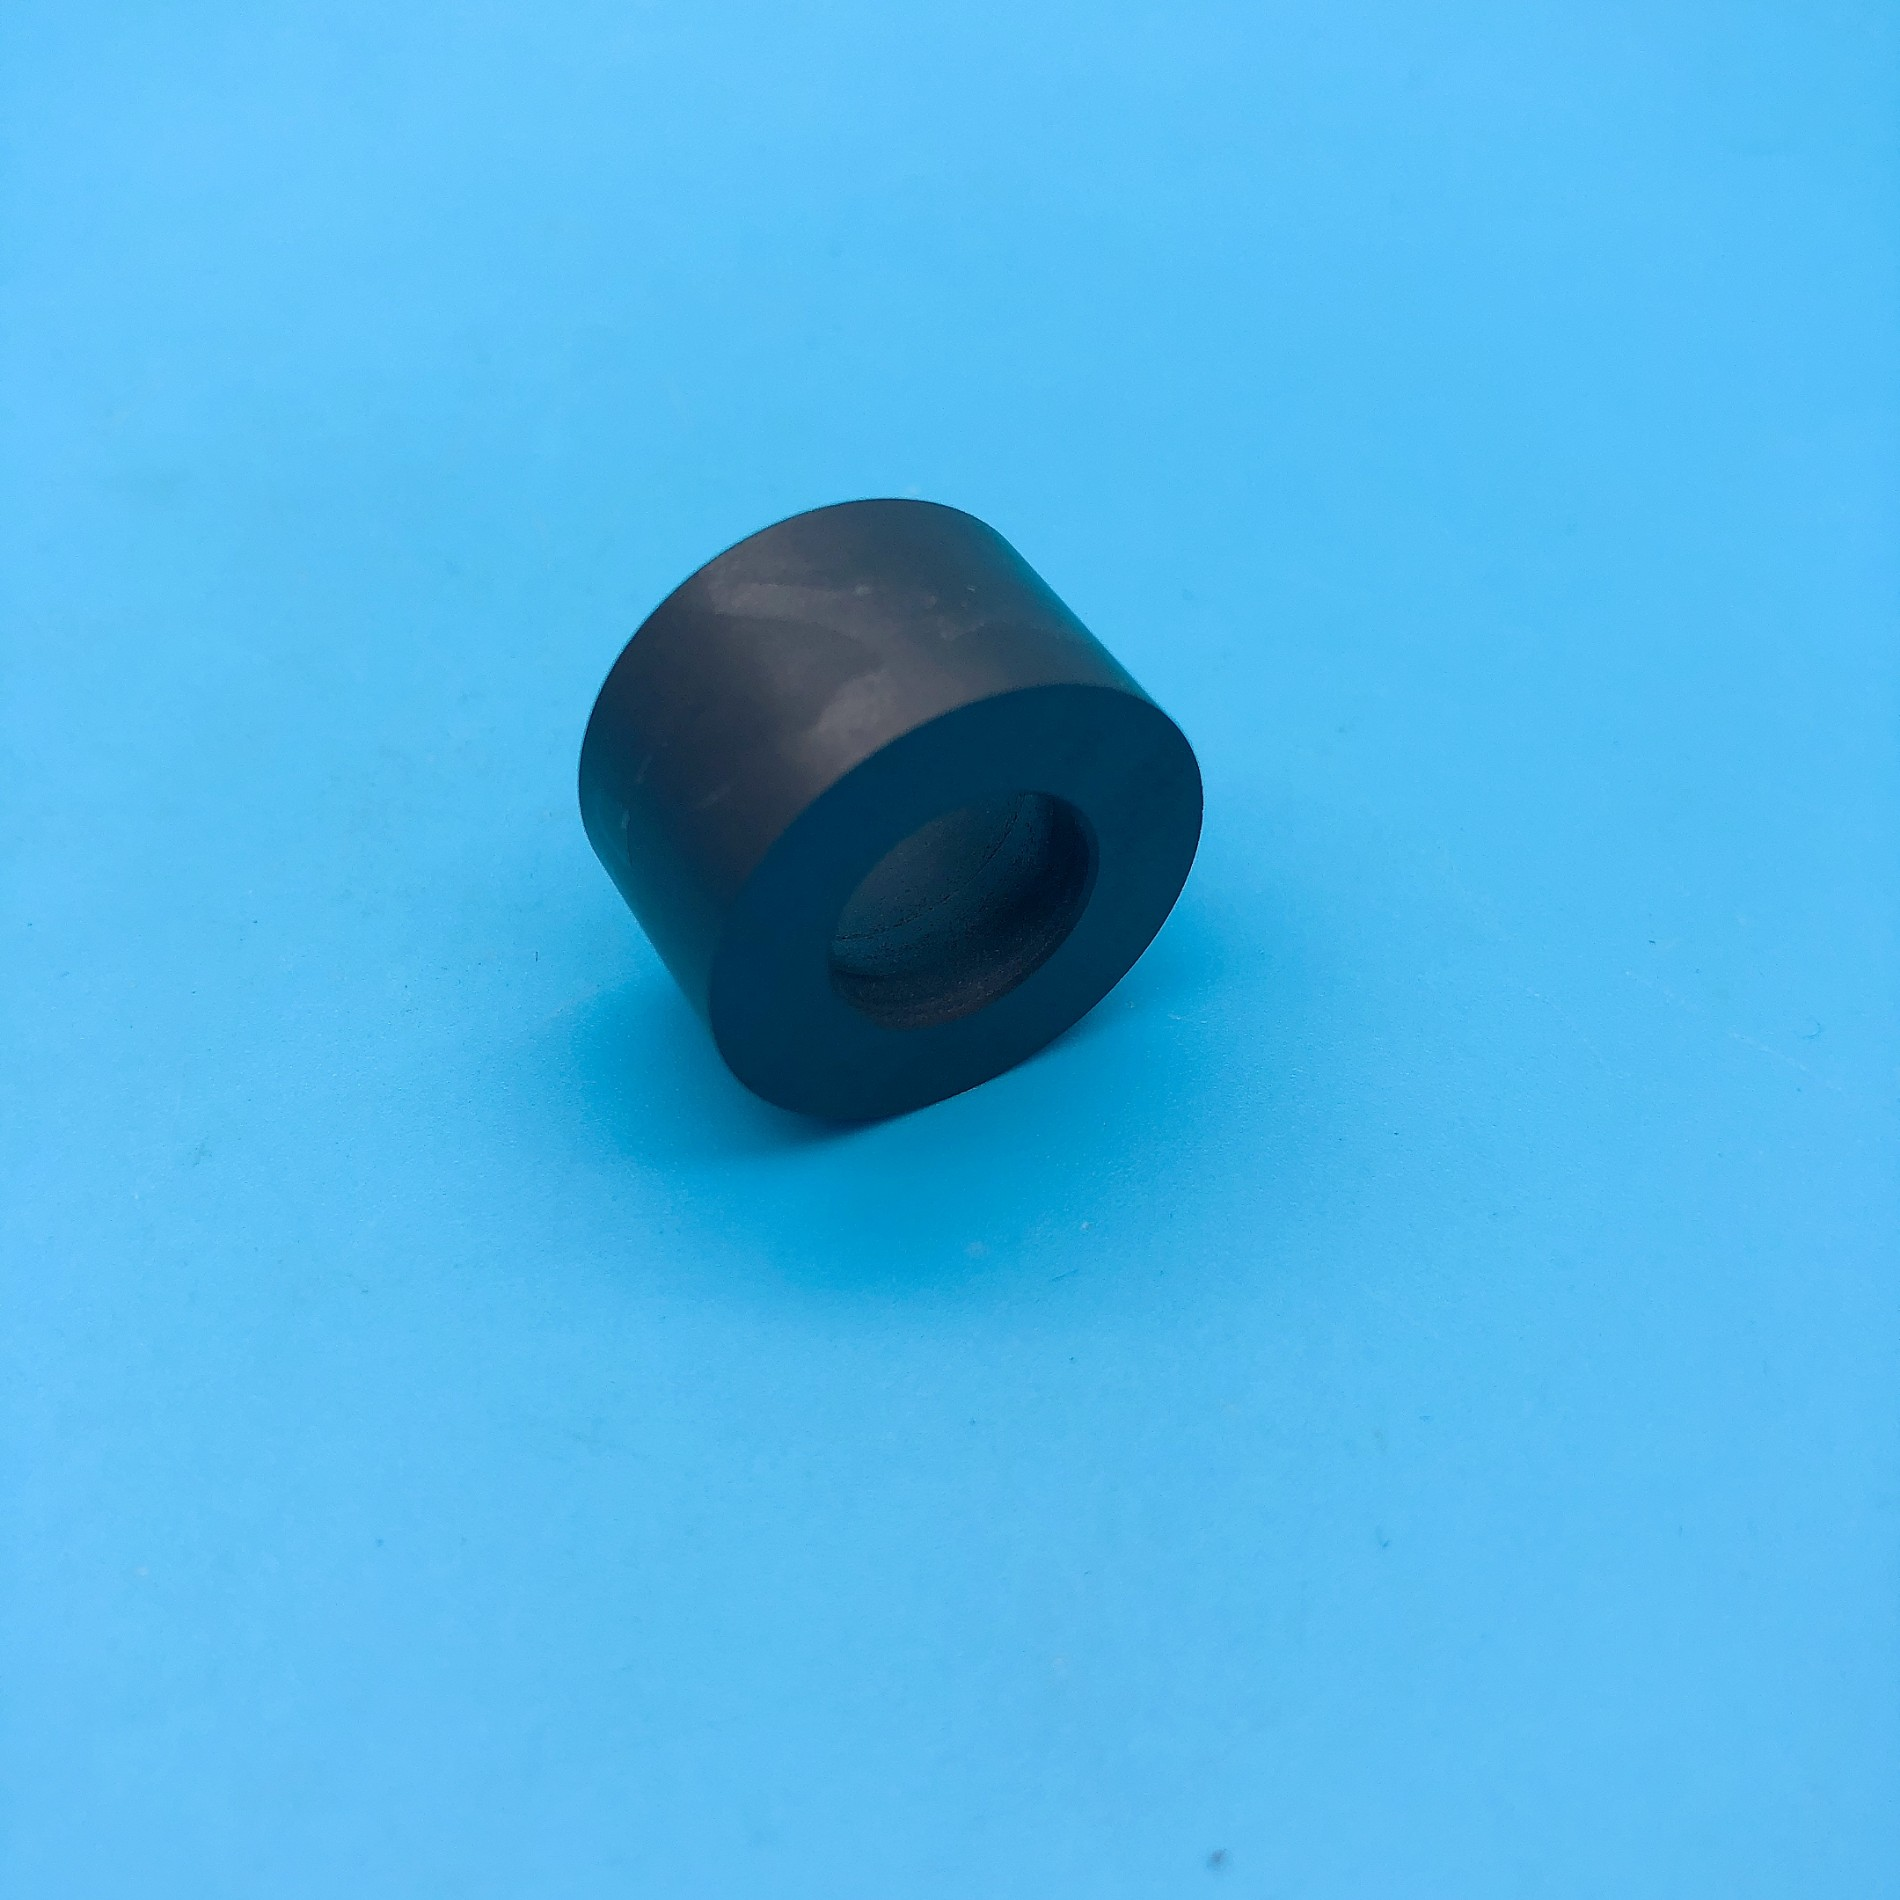 Ceramic Cylinders And Pistons Manufacturers, Ceramic Cylinders And Pistons Factory, Supply Ceramic Cylinders And Pistons